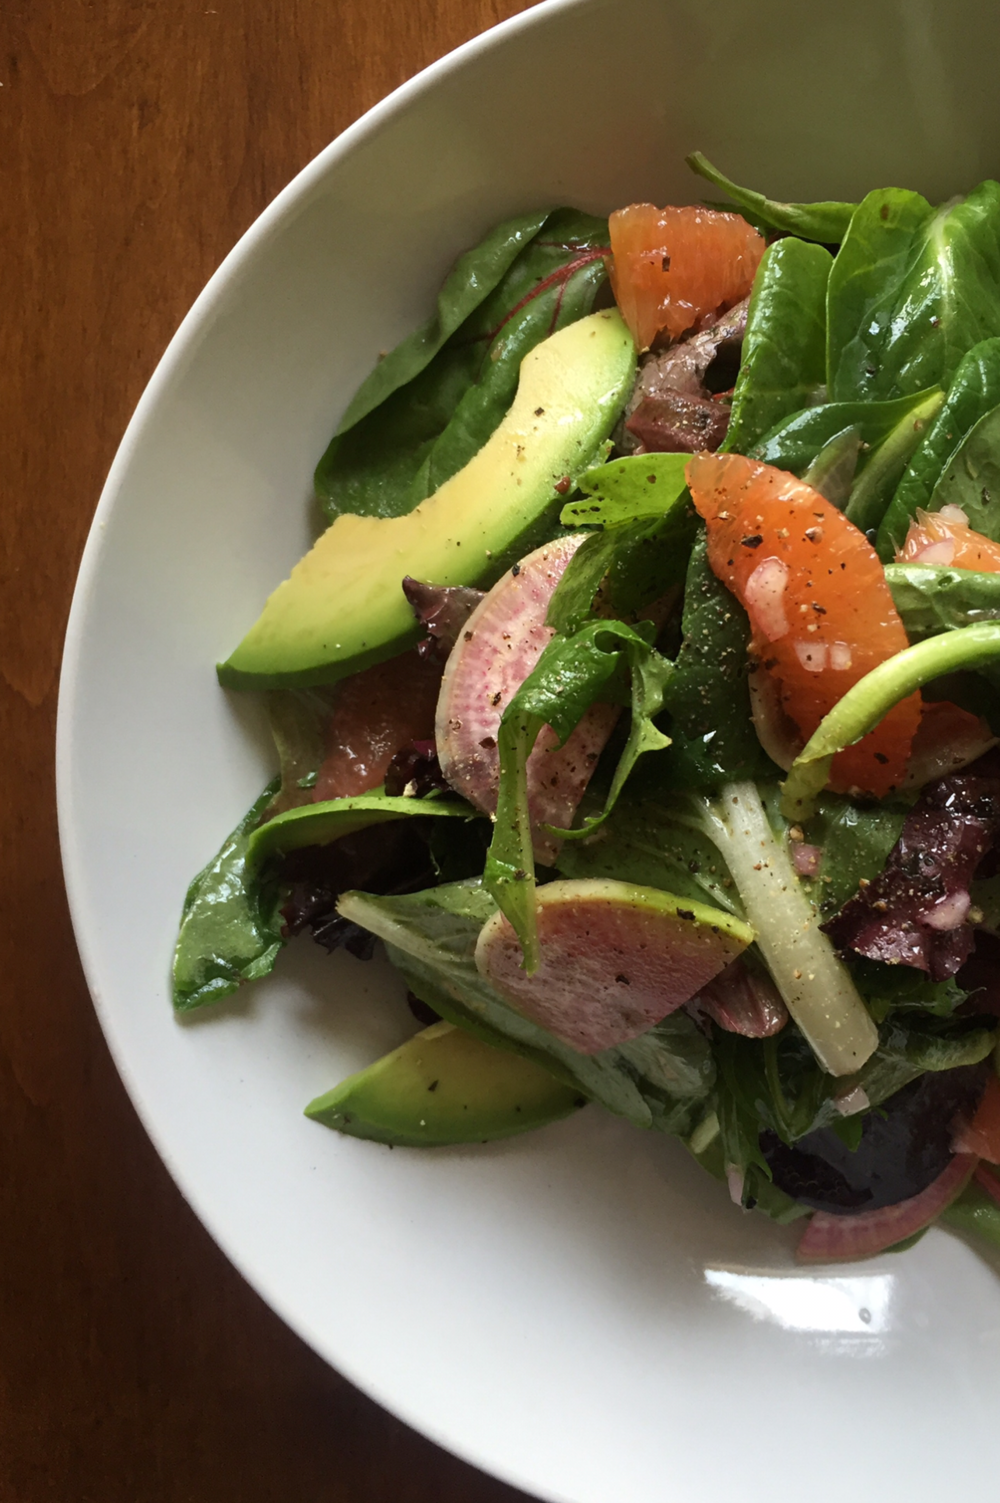 citrus salad with avocado and radish